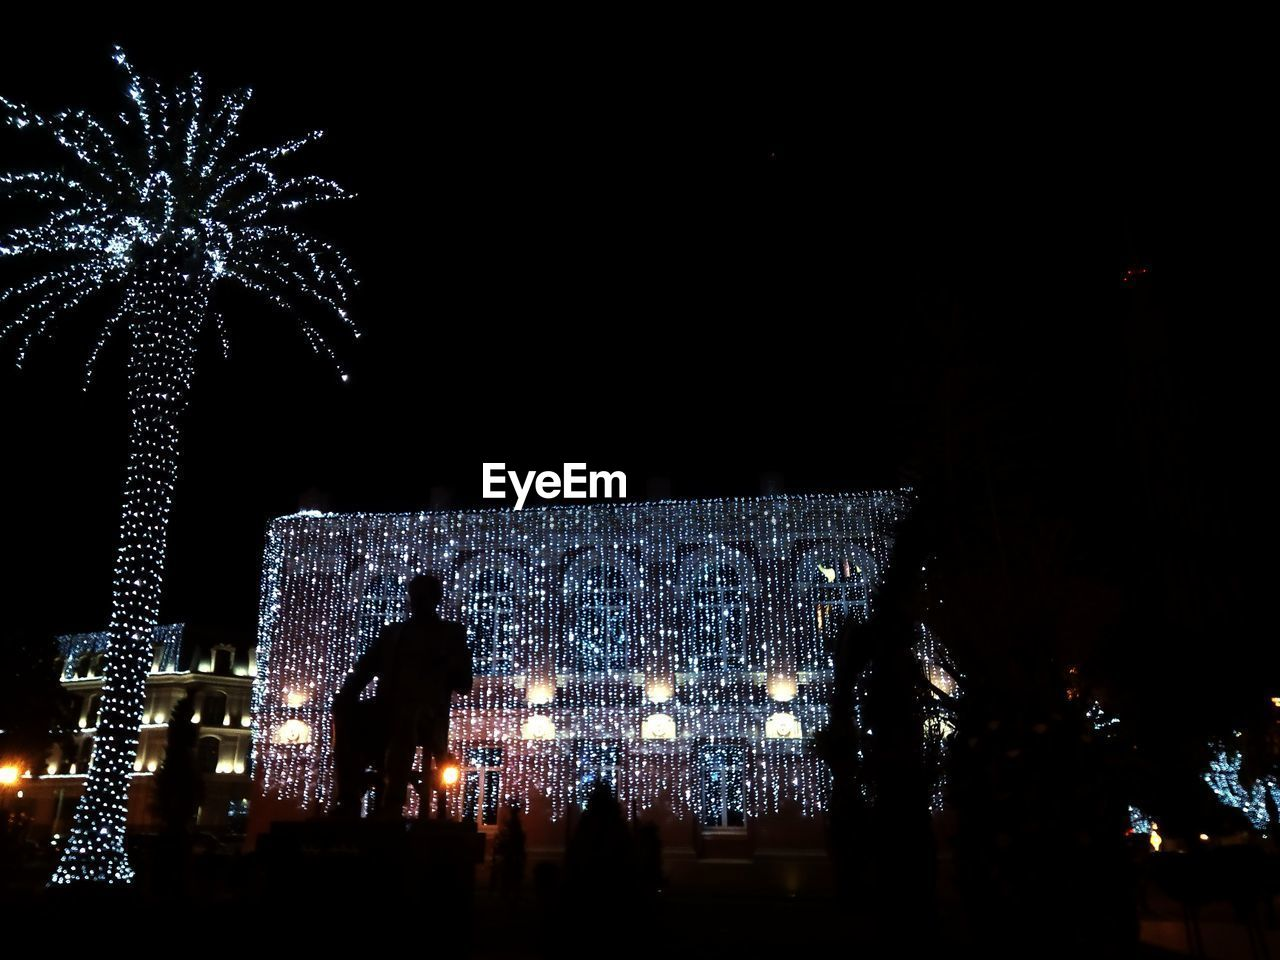 night, illuminated, celebration, christmas, christmas decoration, christmas tree, celebration event, outdoors, christmas lights, tree, large group of people, built structure, architecture, sky, people